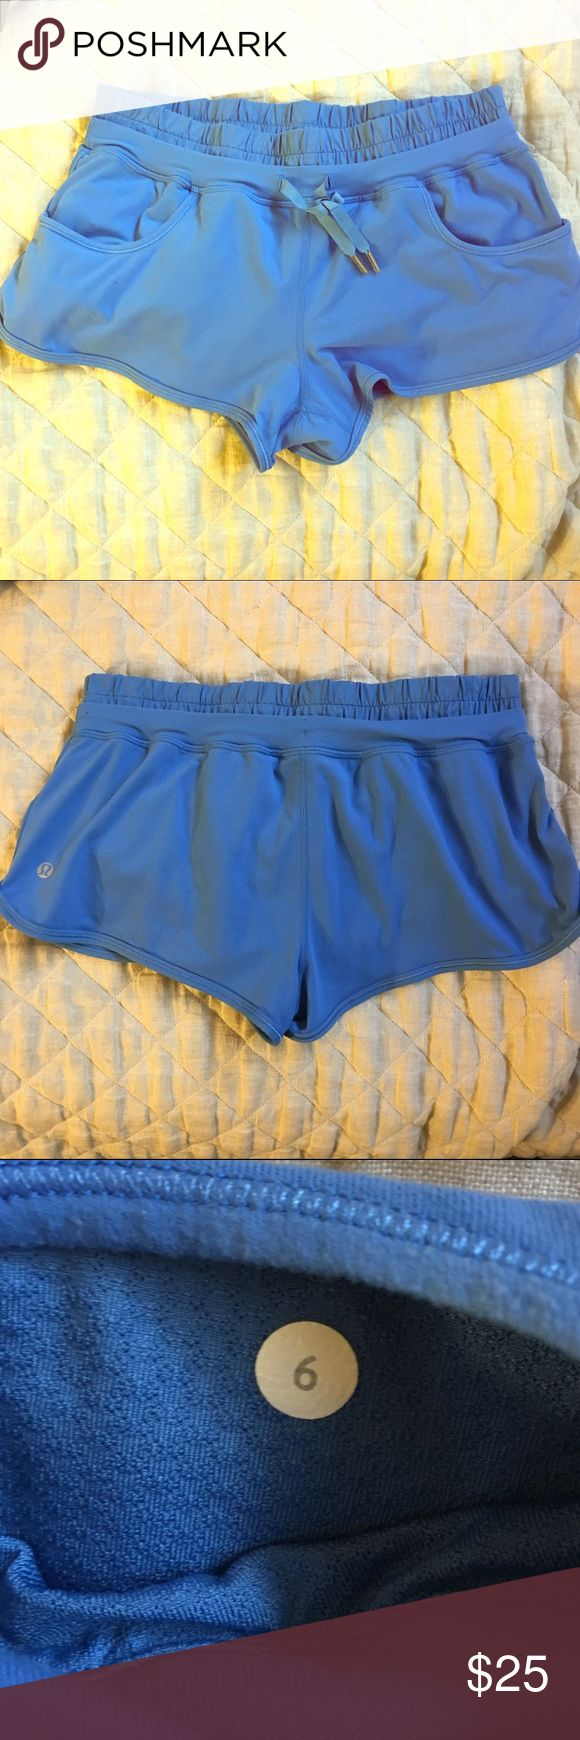 Lululemon Run Shorts 6 Good clean condition. MILD pilling in one tiny spot, otherwise good. Nice royal blue color. Size 6. Interior underwear. lululemon athletica Shorts